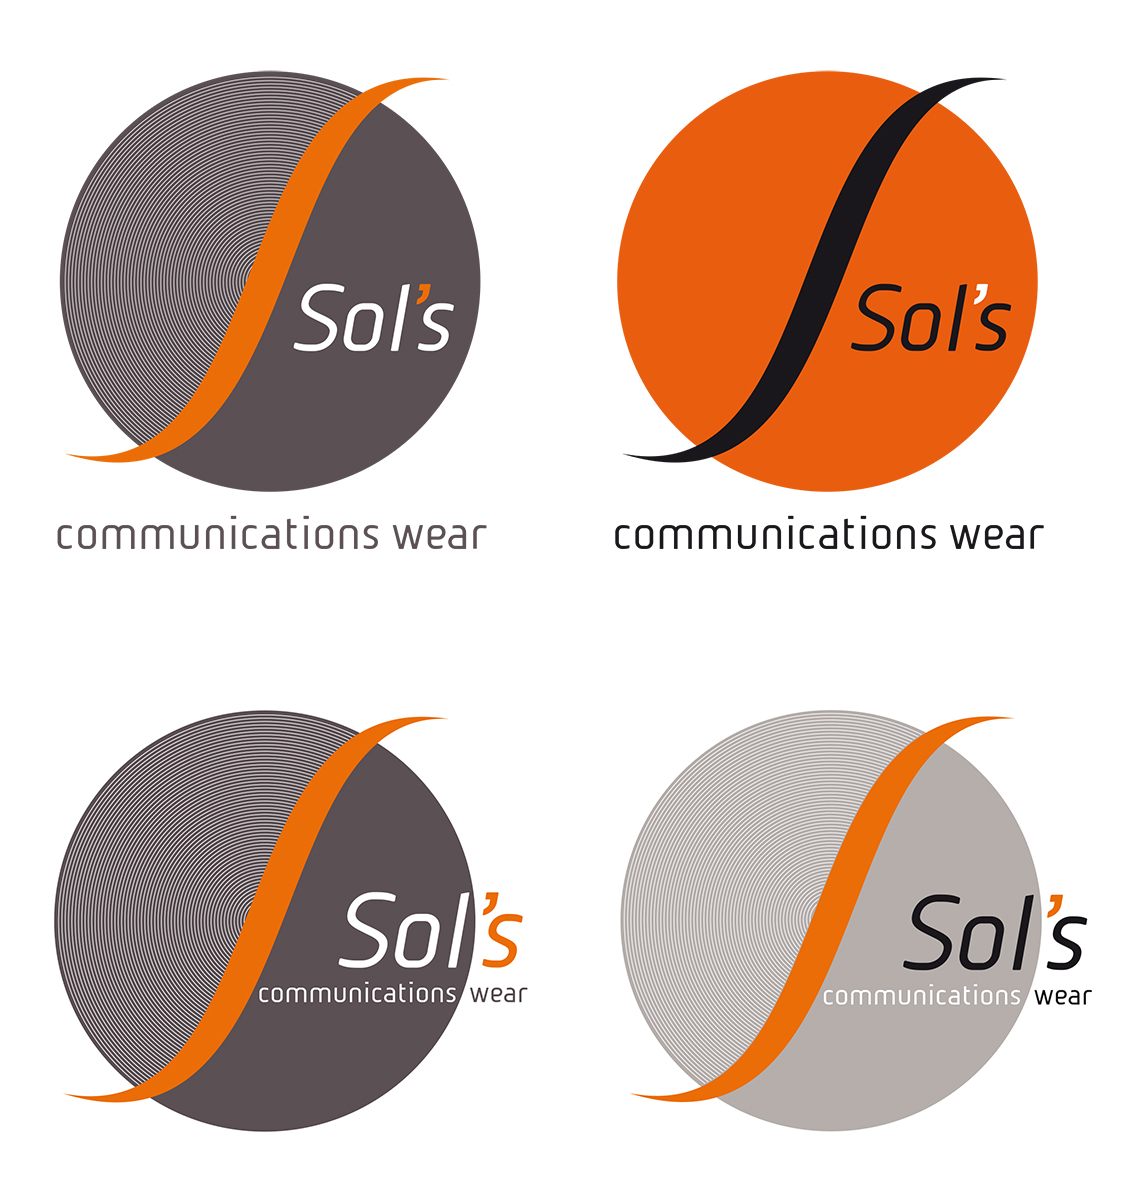 Sol's communications wear - logo proposal